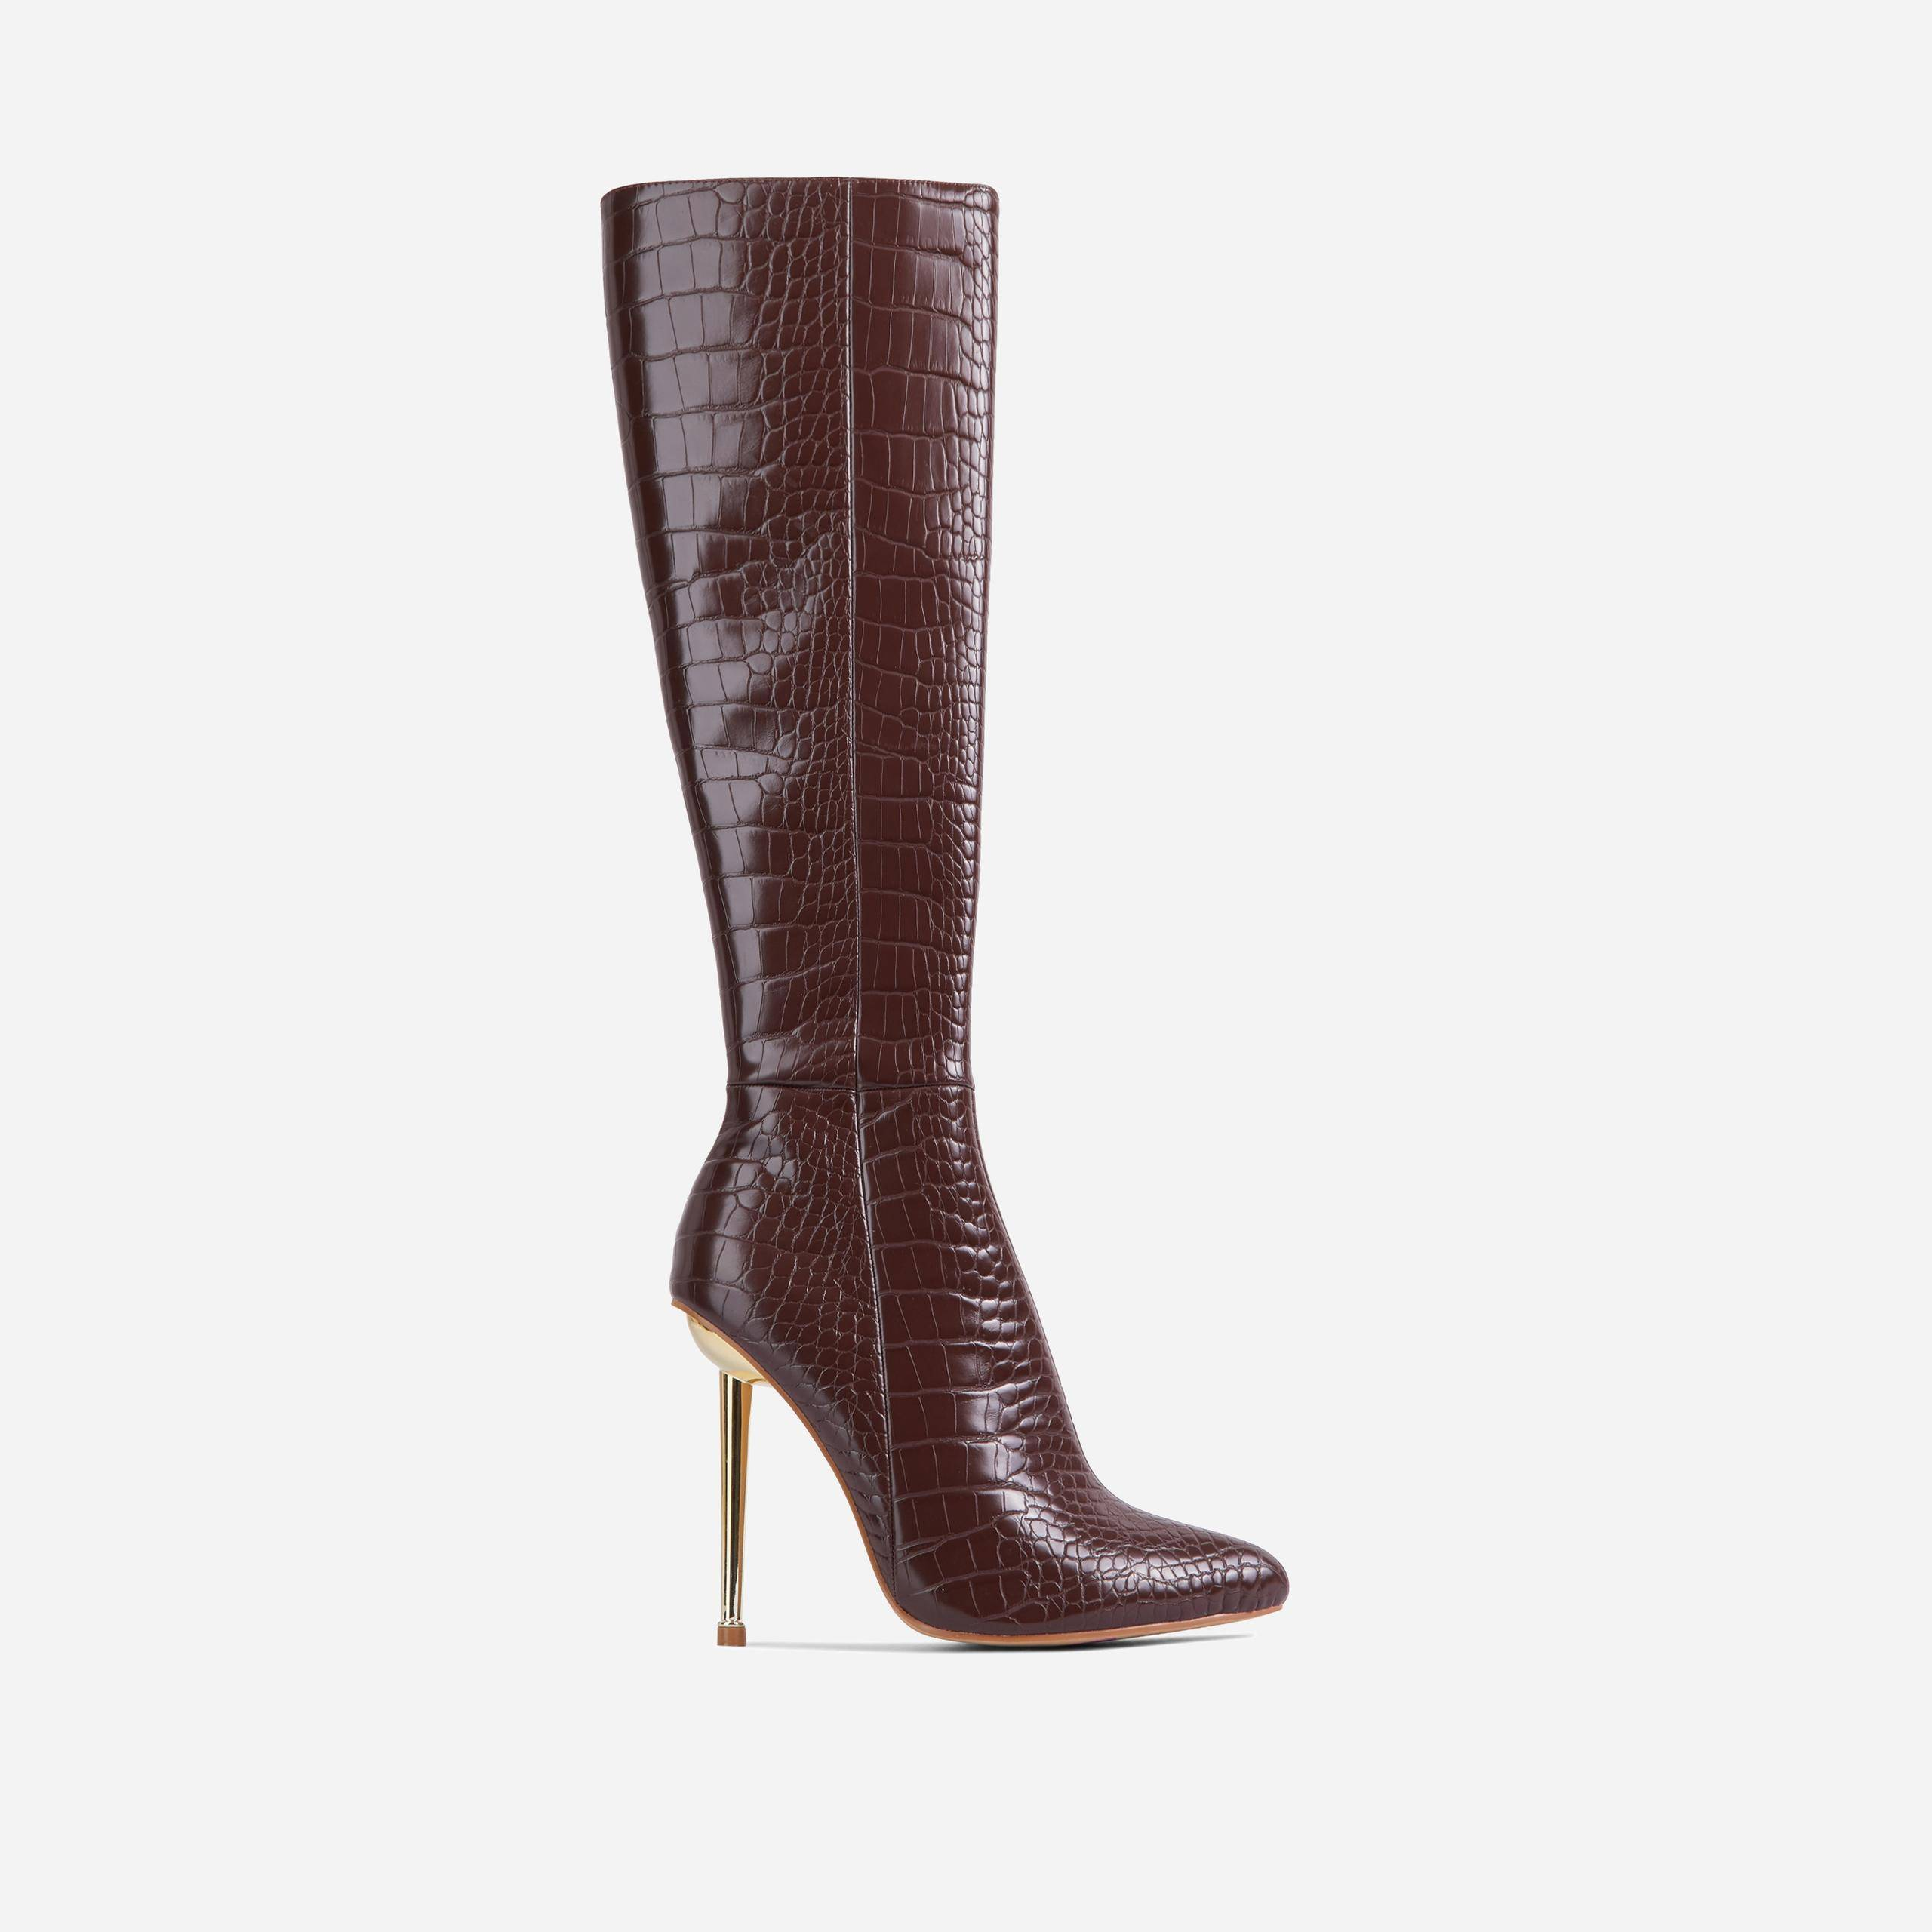 EGO Clarity Metallic Heel Knee High Long Boots In Dark Brown Croc Print Faux Leather, Brown  - female - Size: 10